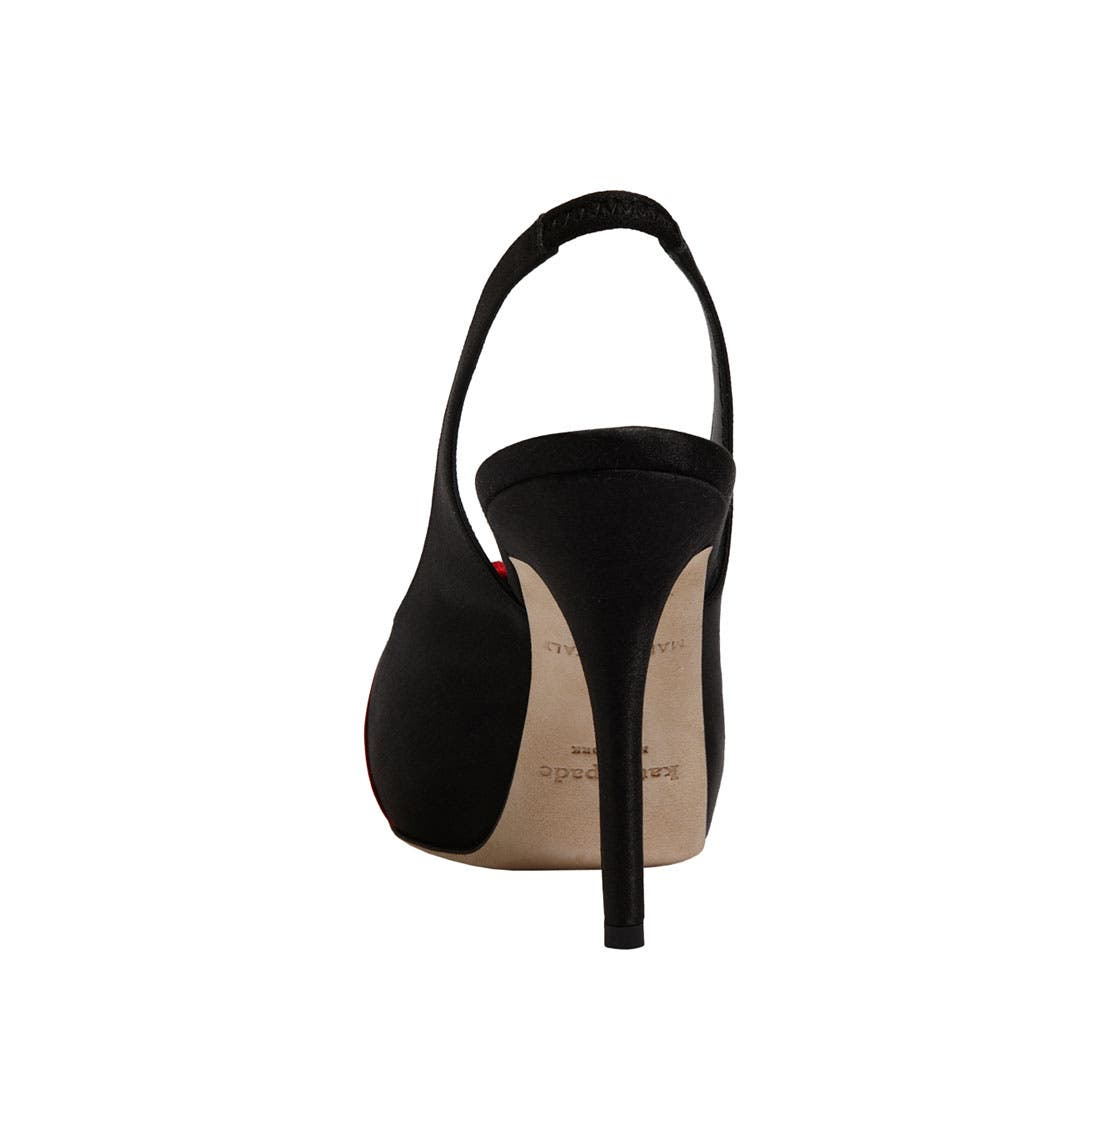 'guest' slingback pump,                             Alternate thumbnail 4, color,                             Black Satin/ Red Satin